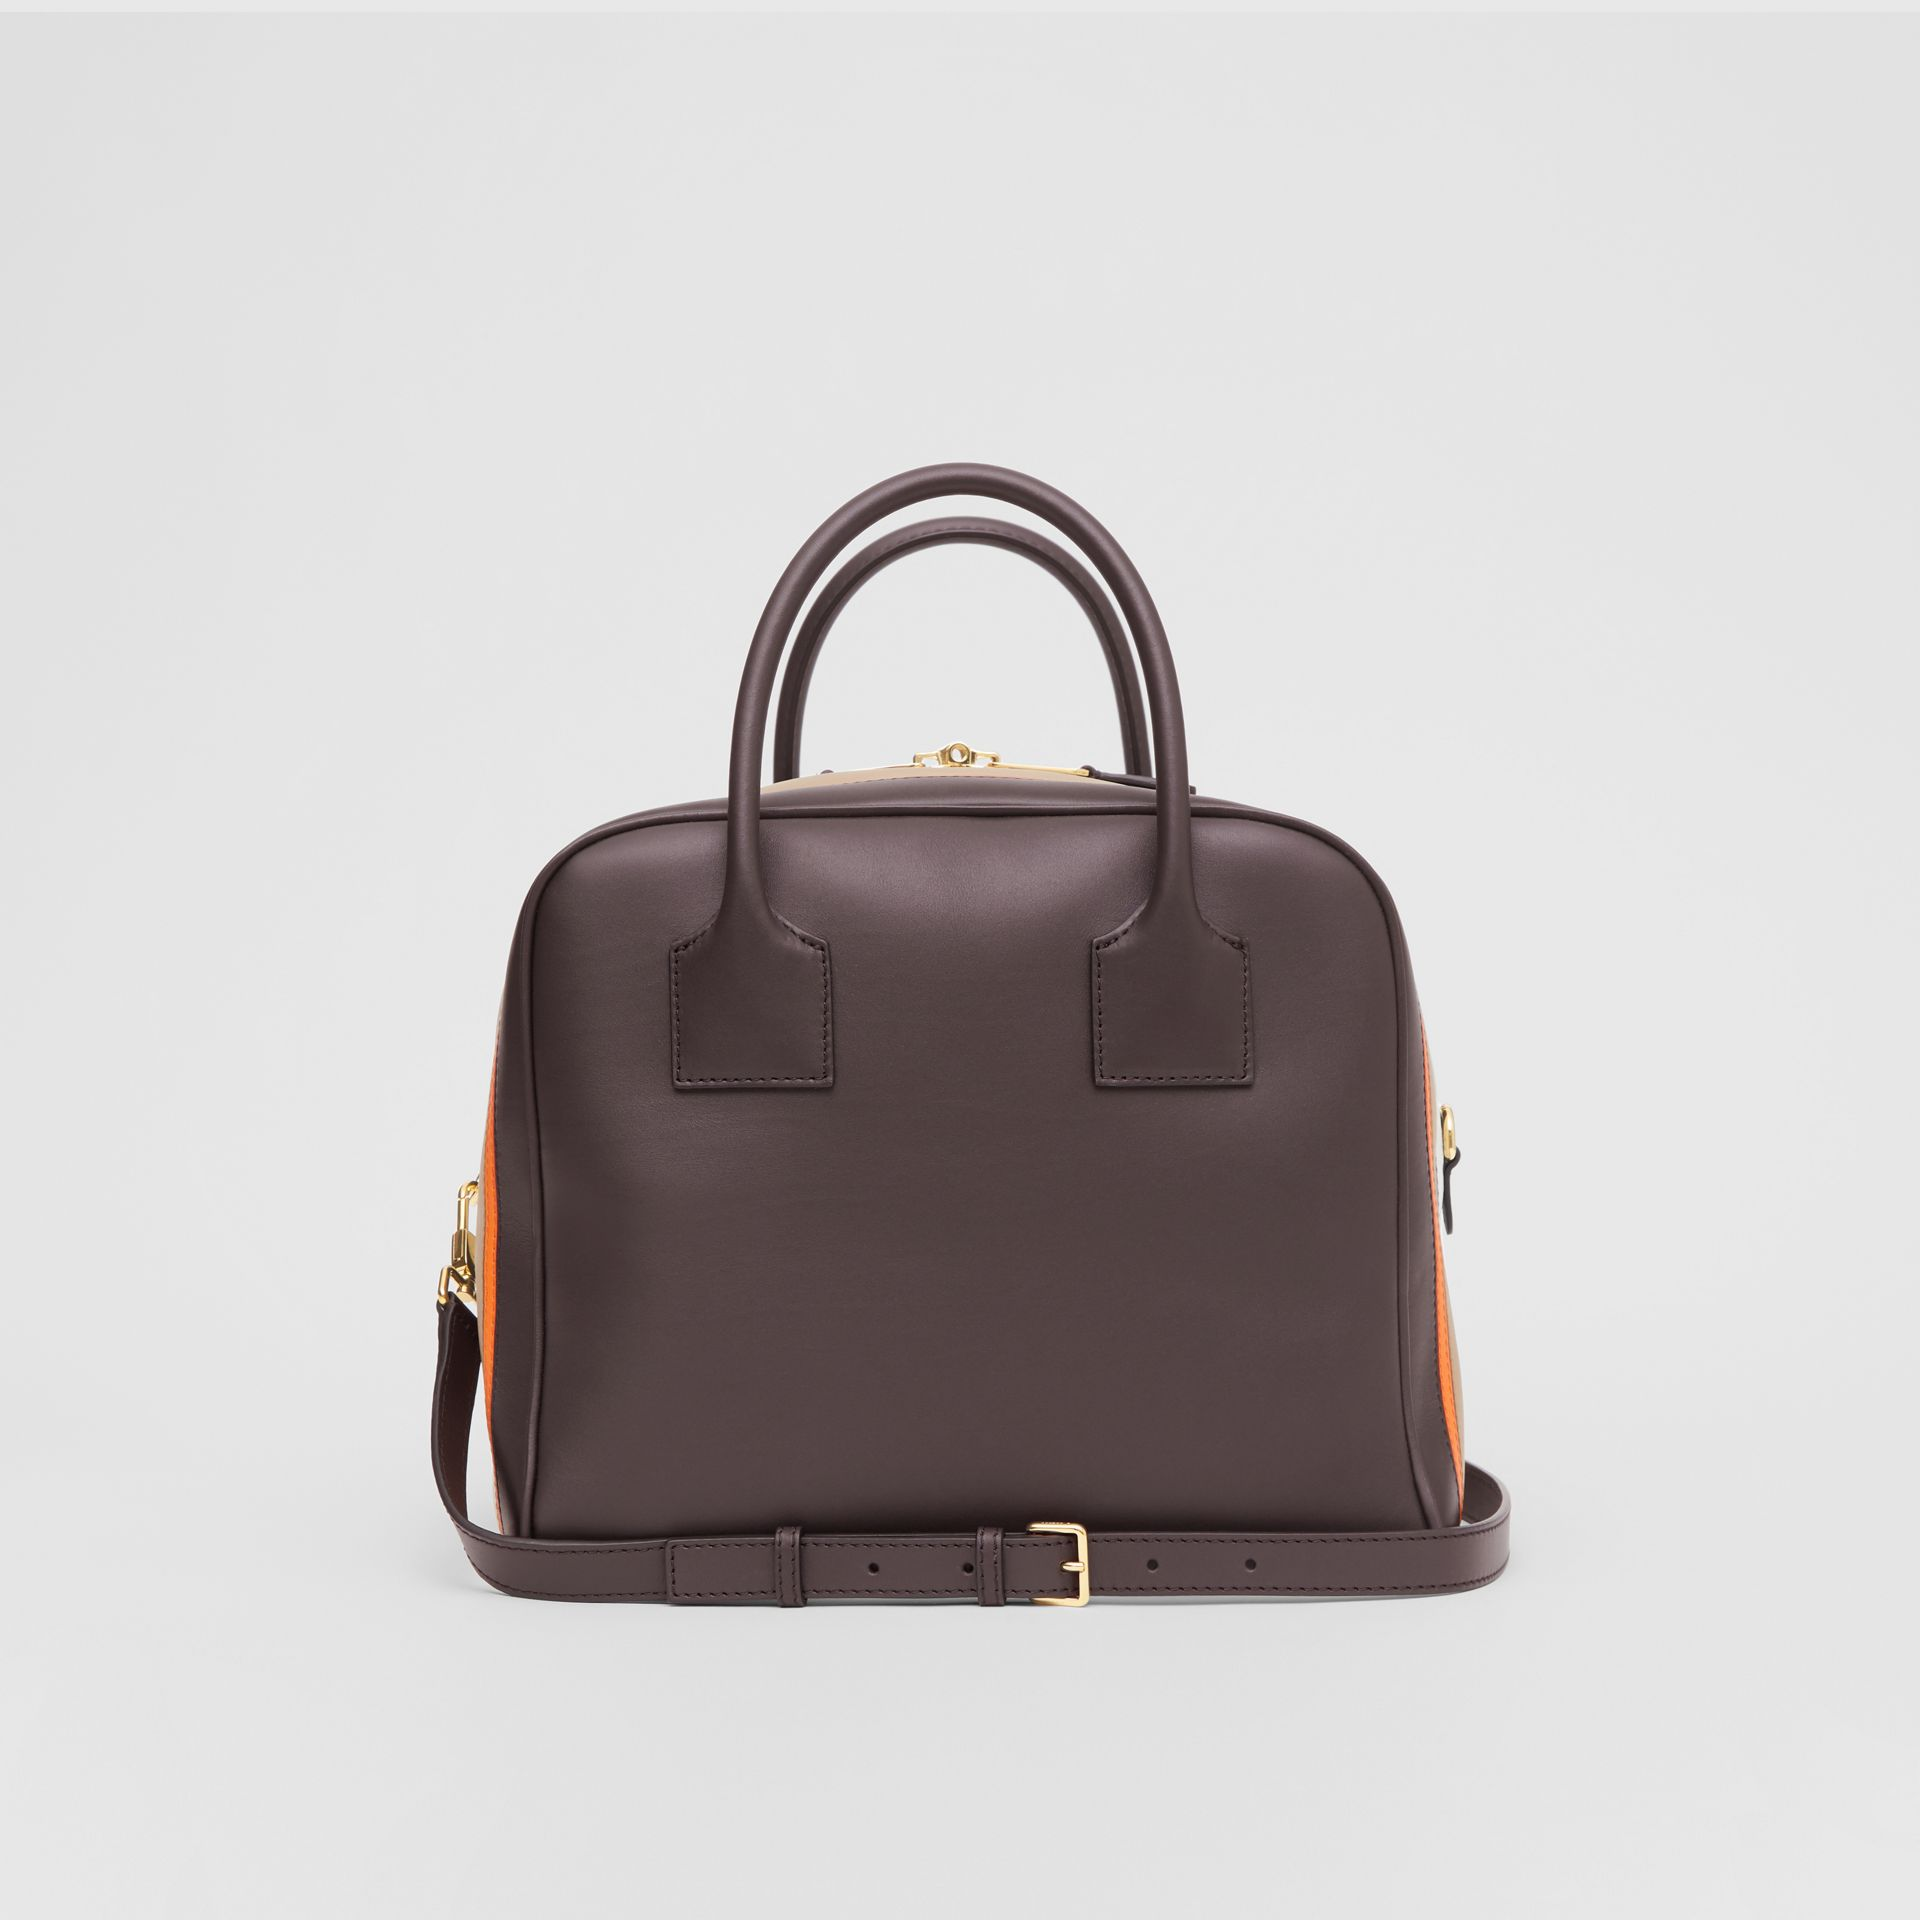 Medium Stripe Intarsia Leather Cube Bag in Coffee/pumpkin - Women | Burberry Canada - gallery image 7